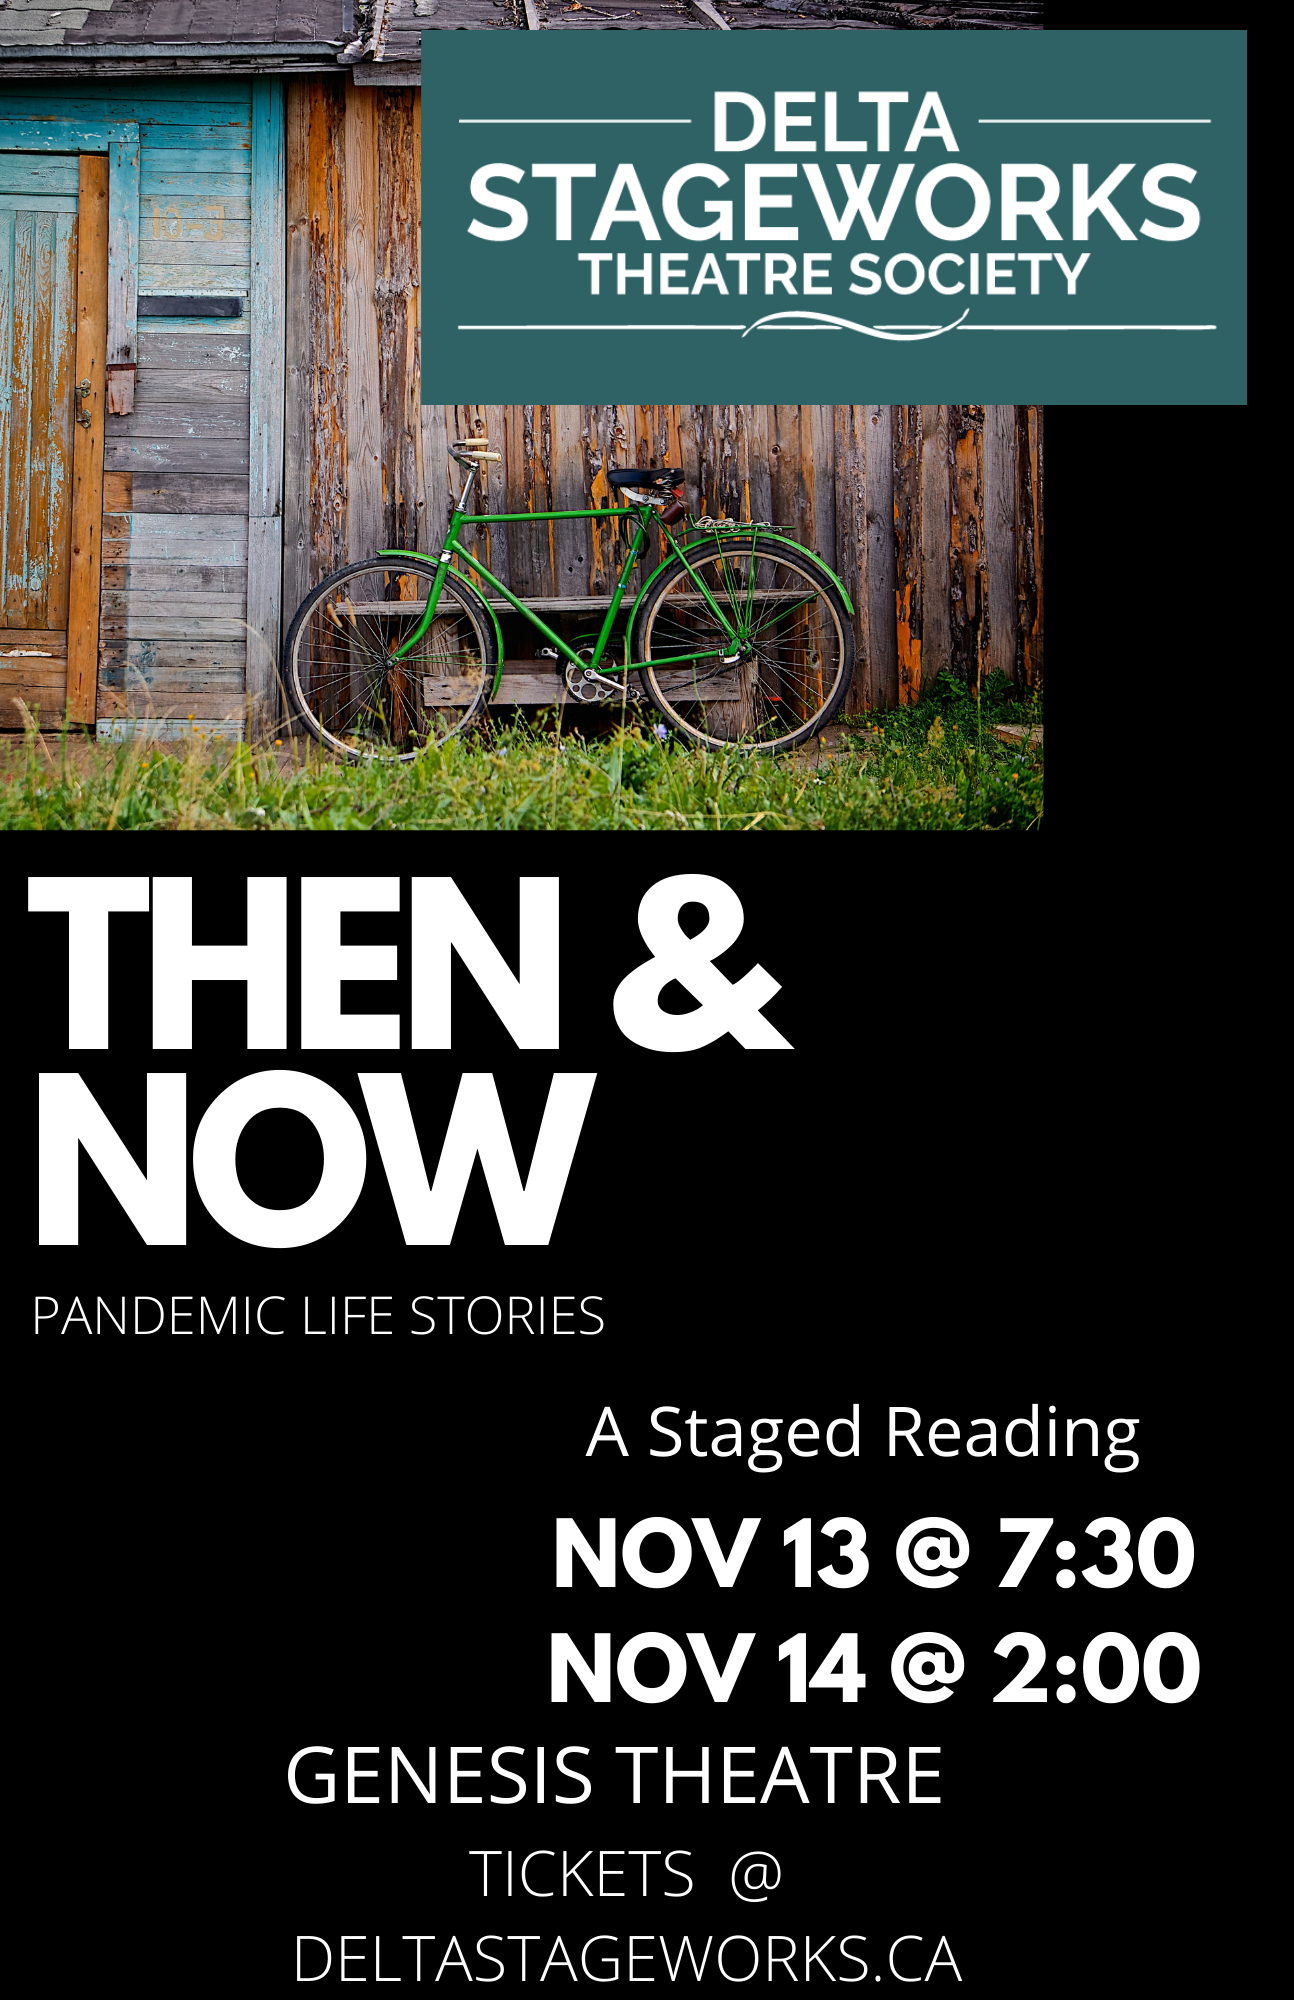 Then & Now: Pandemic Life Stories